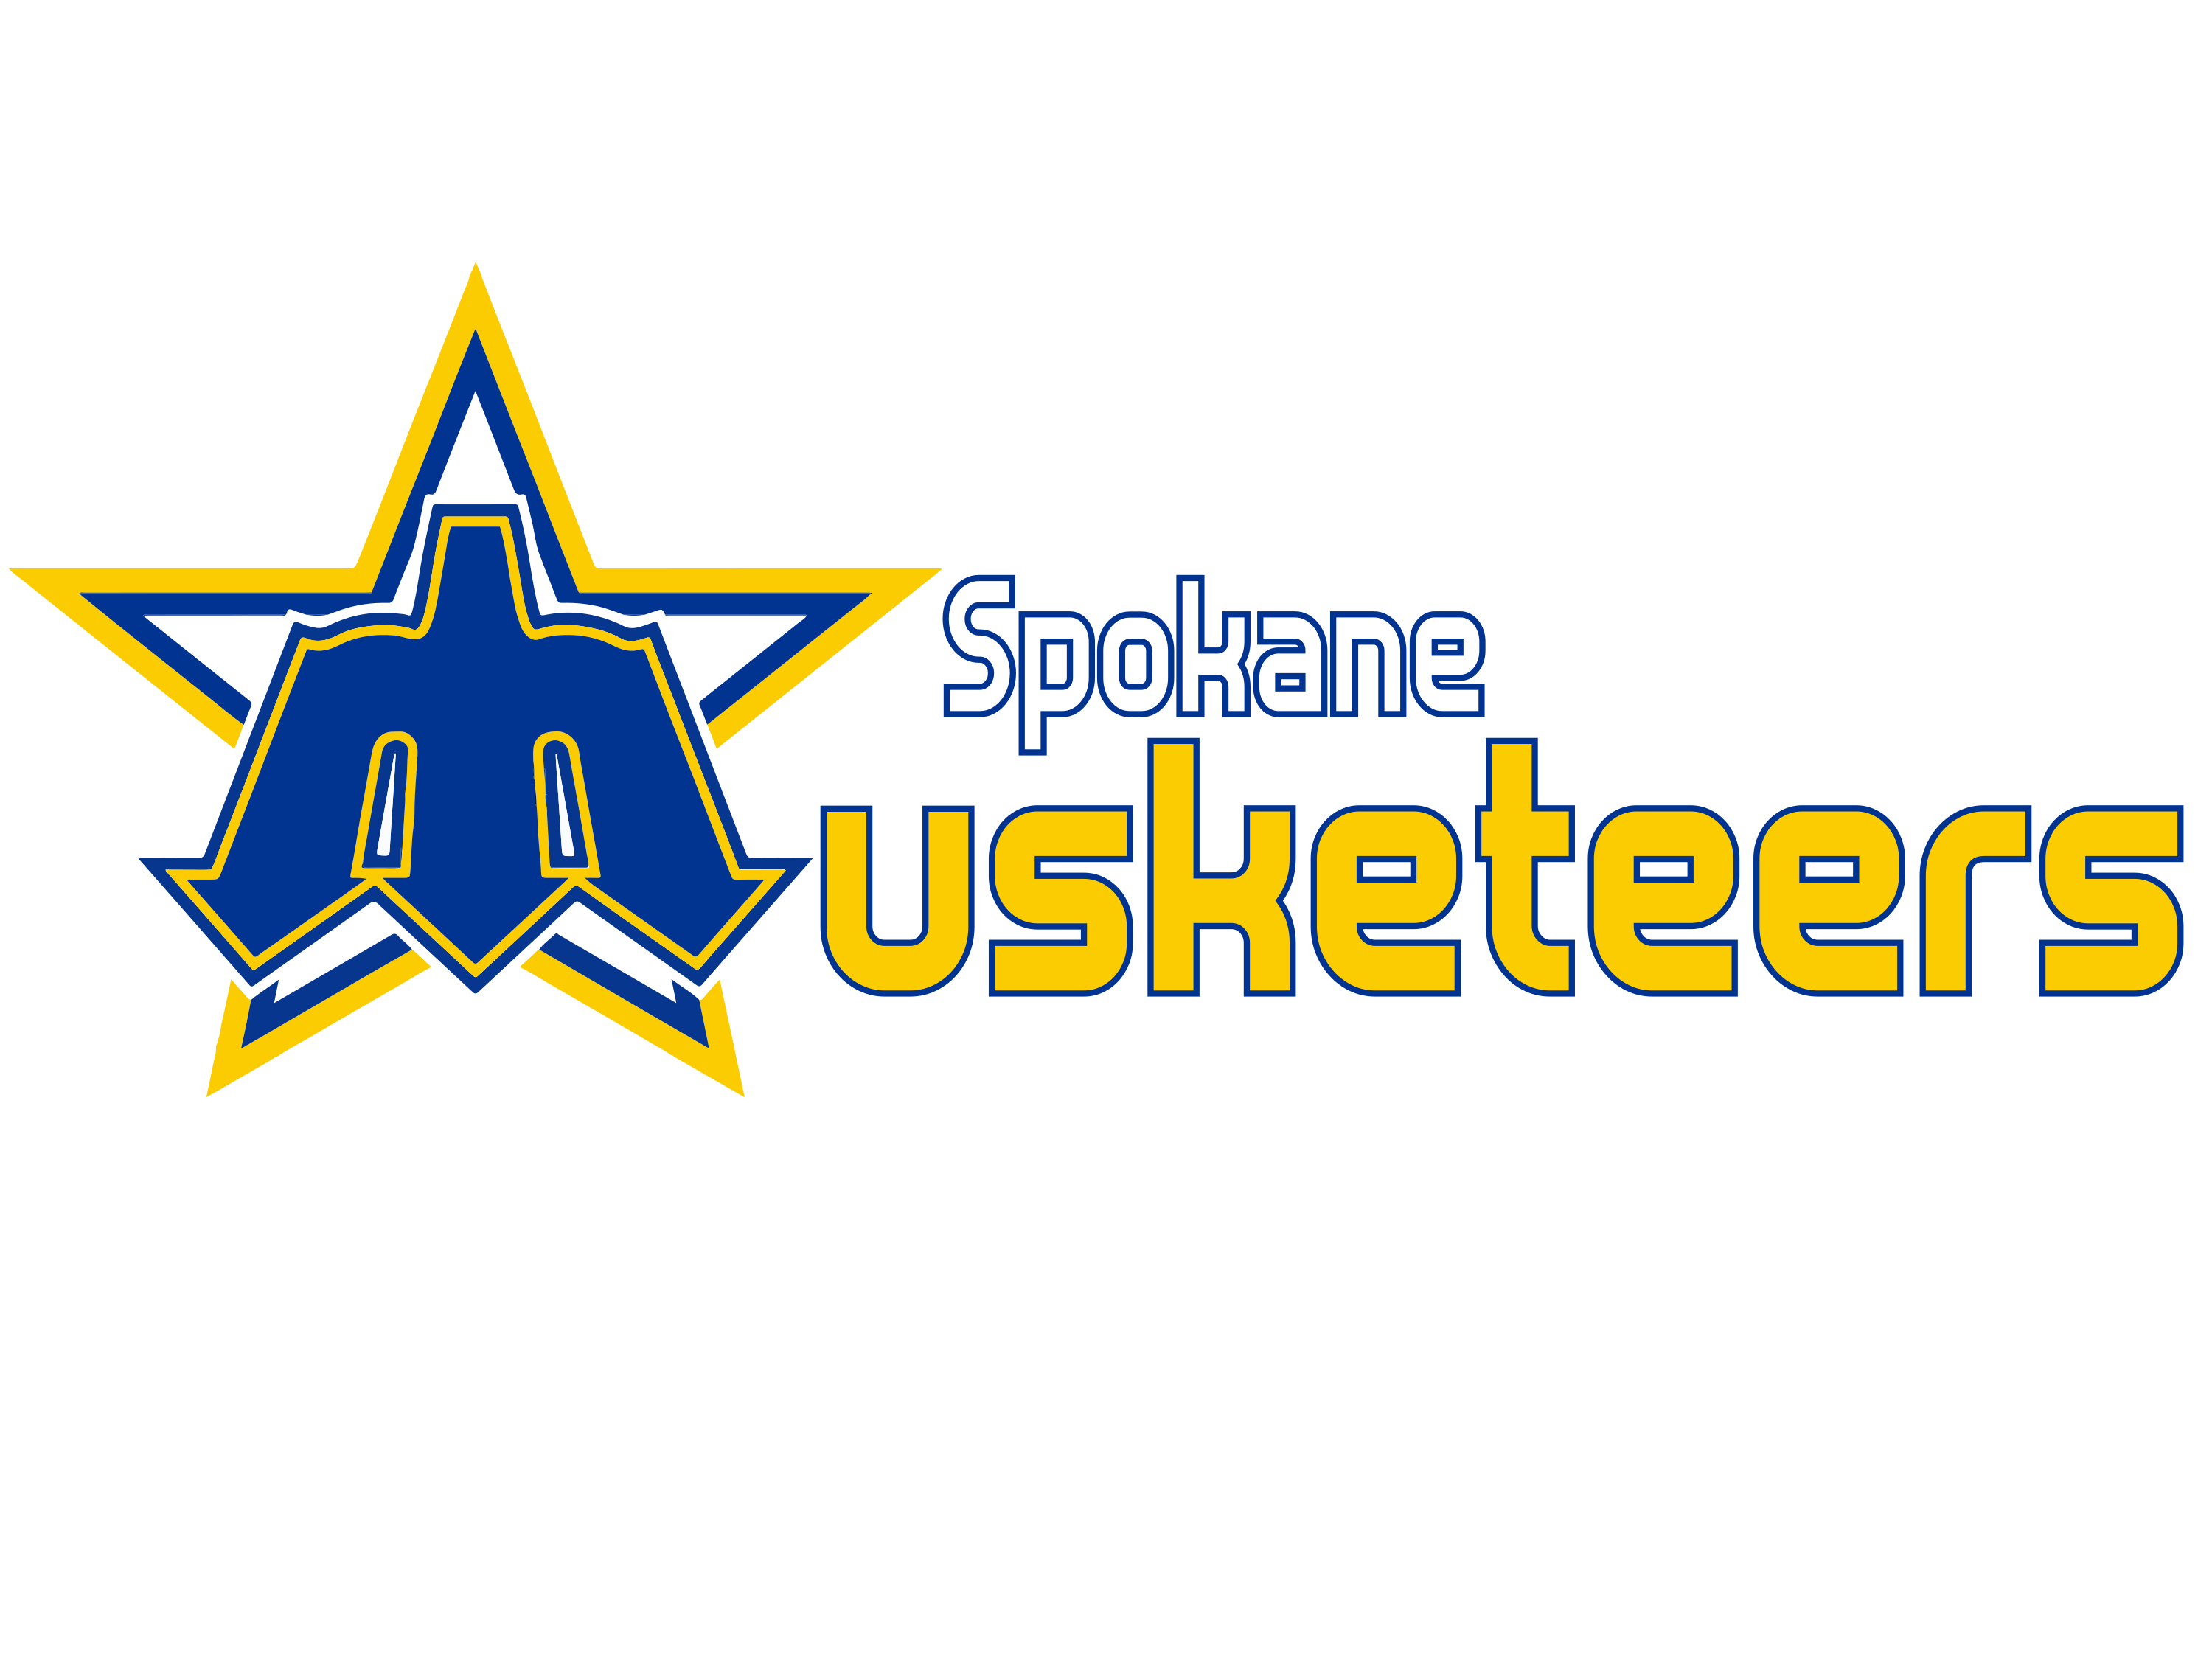 Spokane Musketeers Baseball